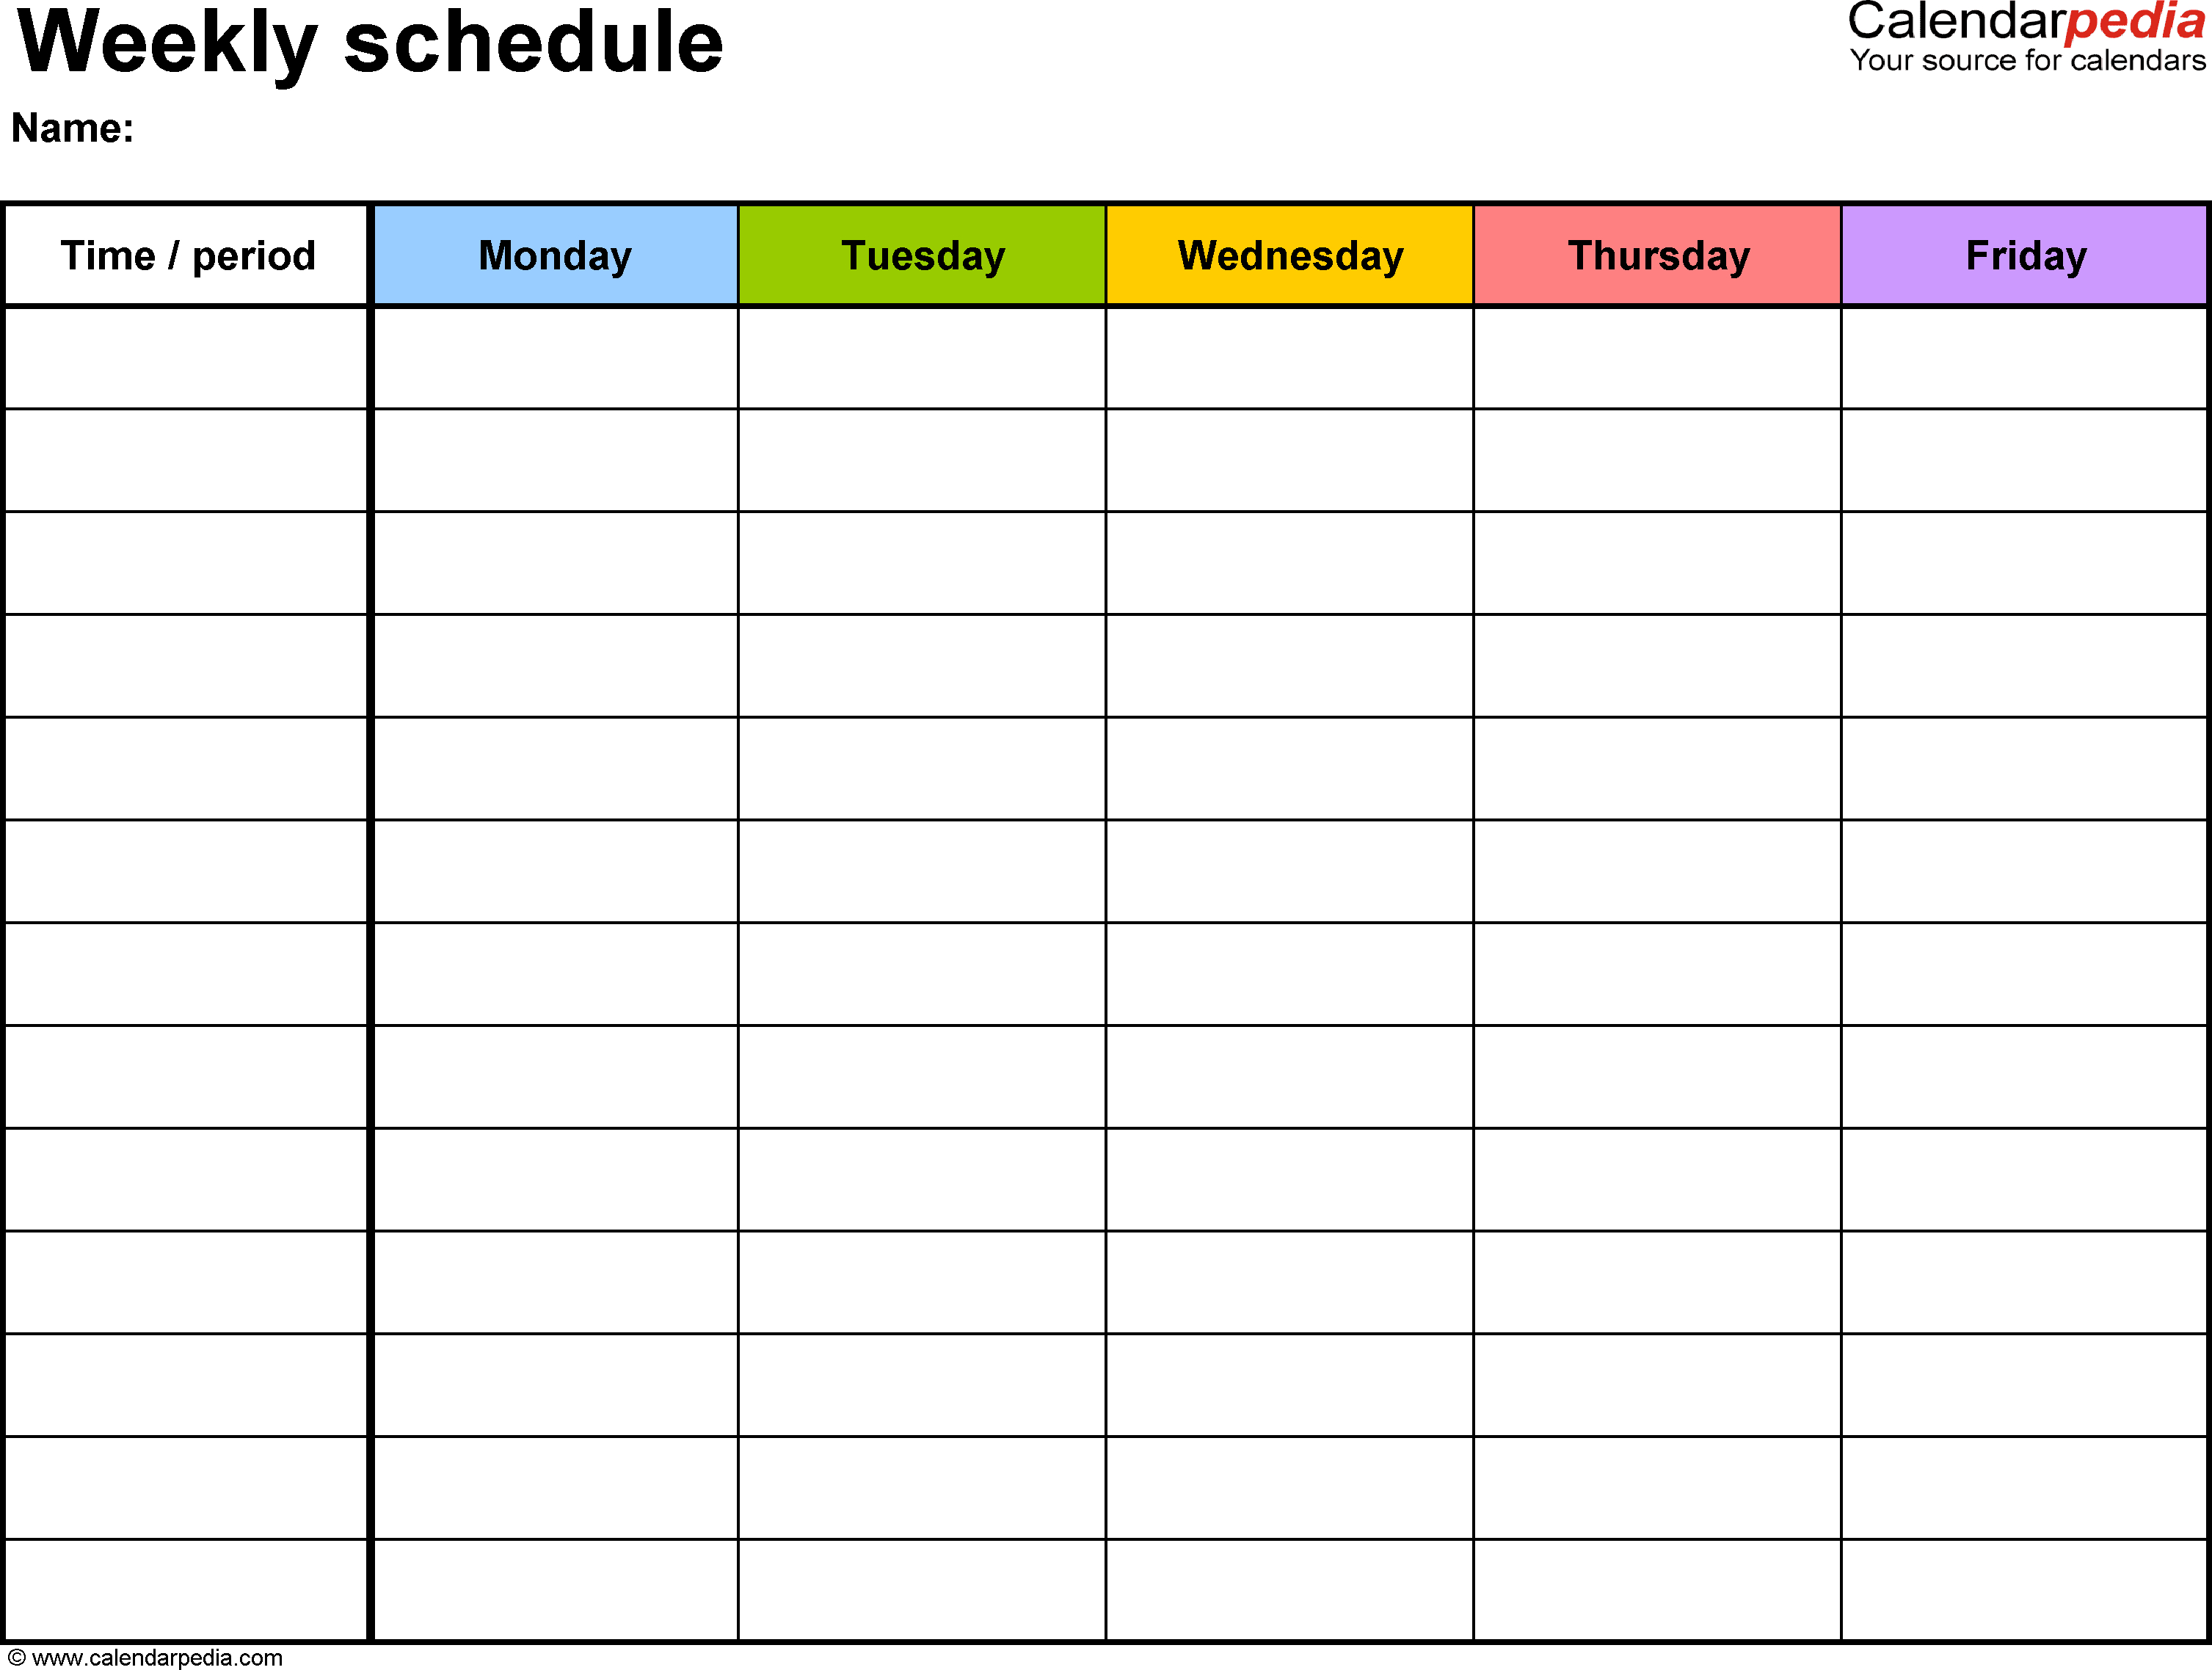 Free Weekly Schedule Templates For Excel - 18 Templates pertaining to Free 7 Day Work Schedule Template Pdf